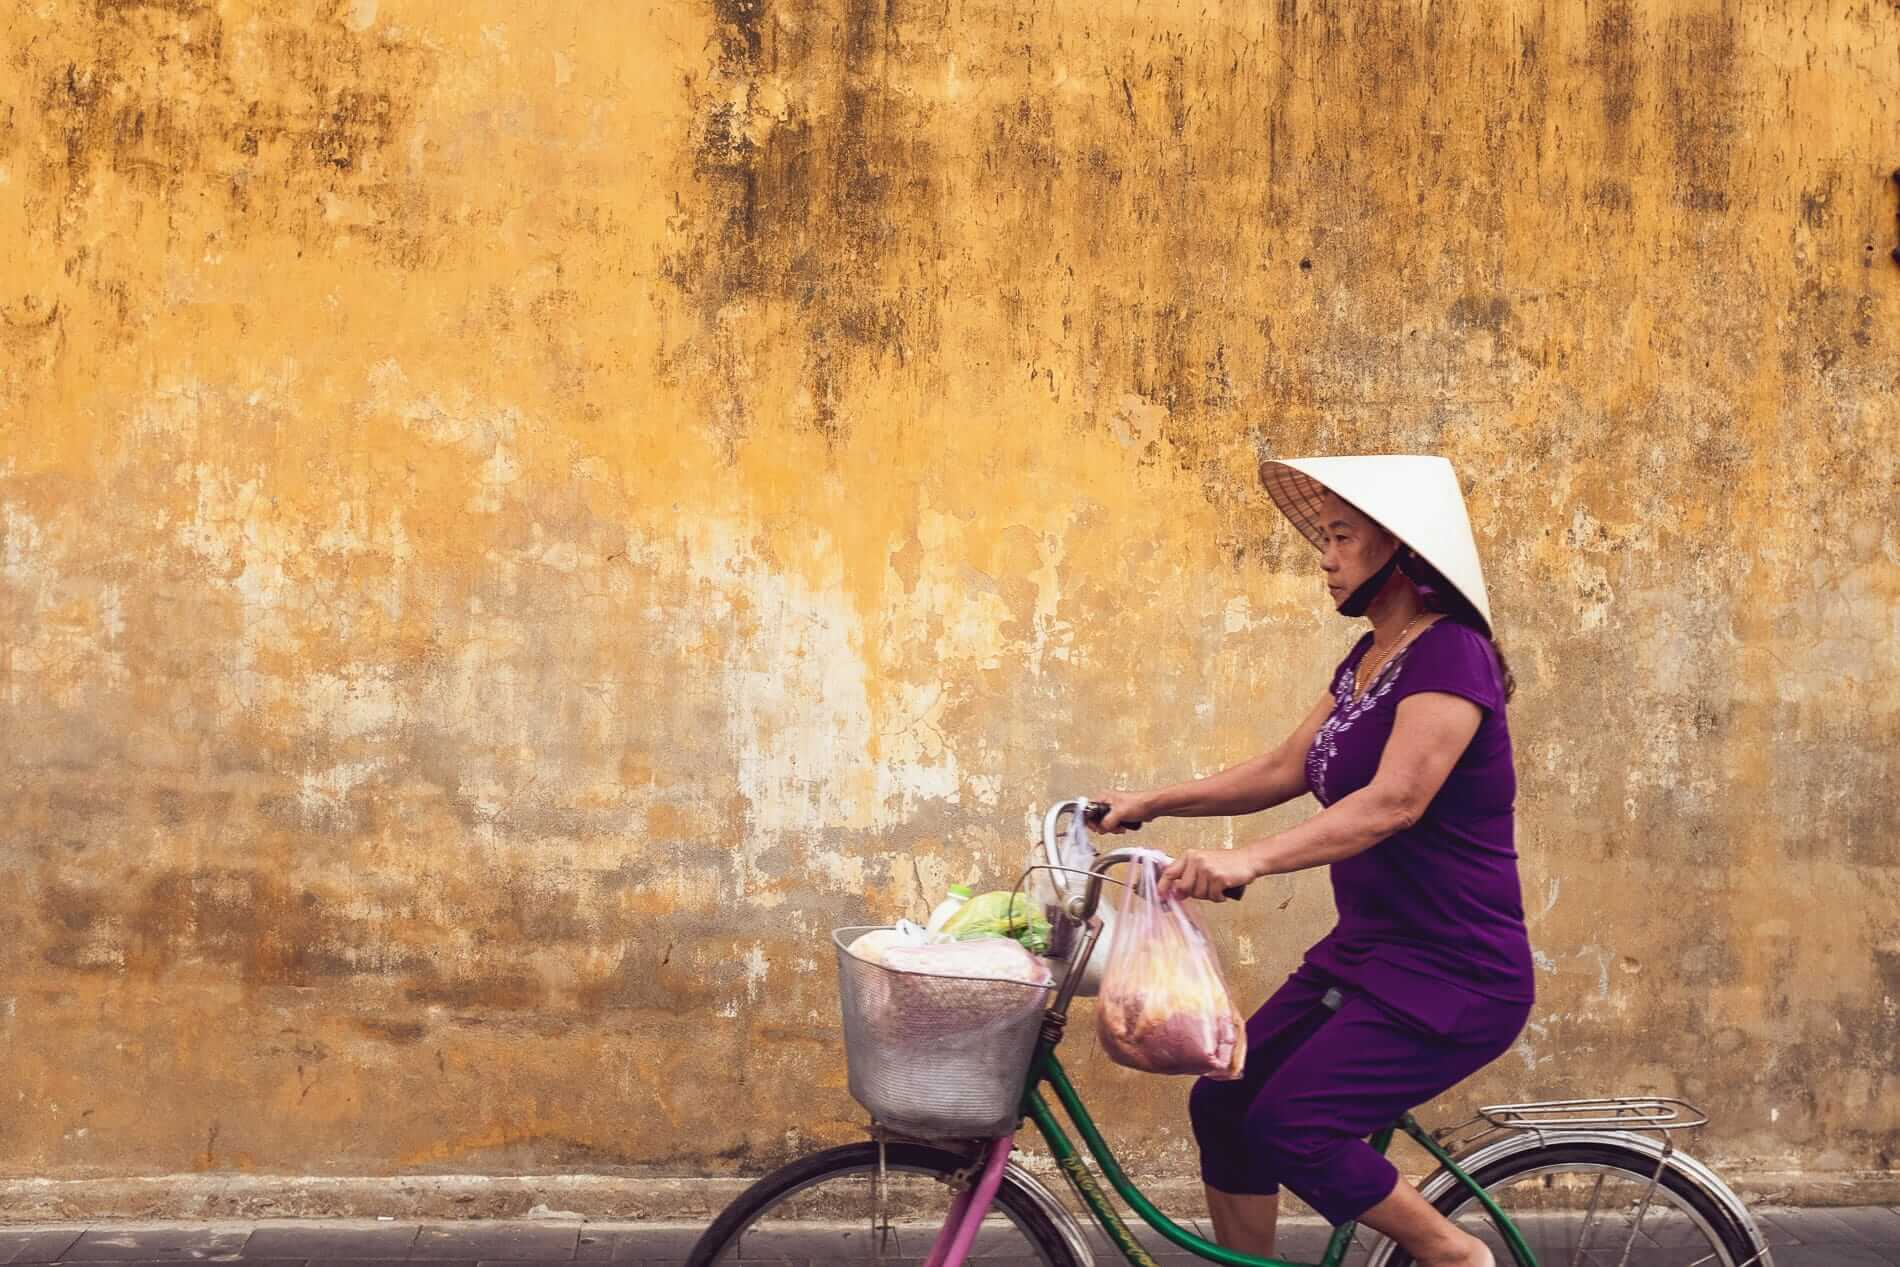 A woman cycling while carrying her shopping